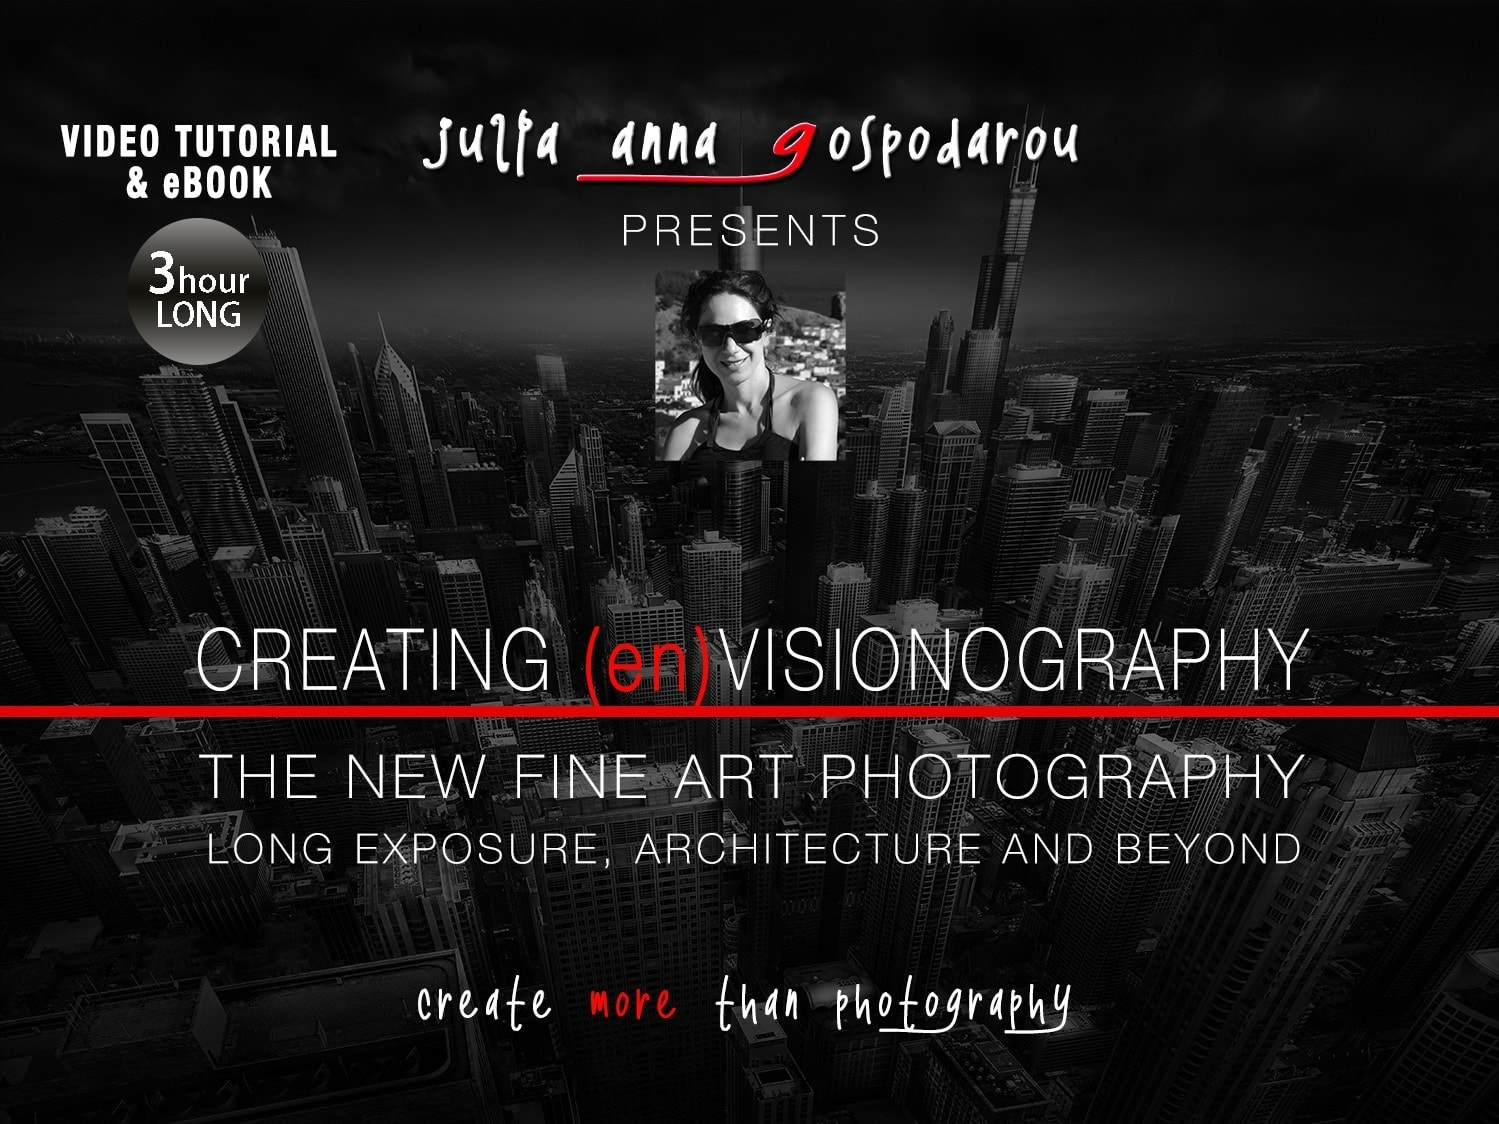 Long Exposure Architecture Fine Art Photography - Creating enVisionography